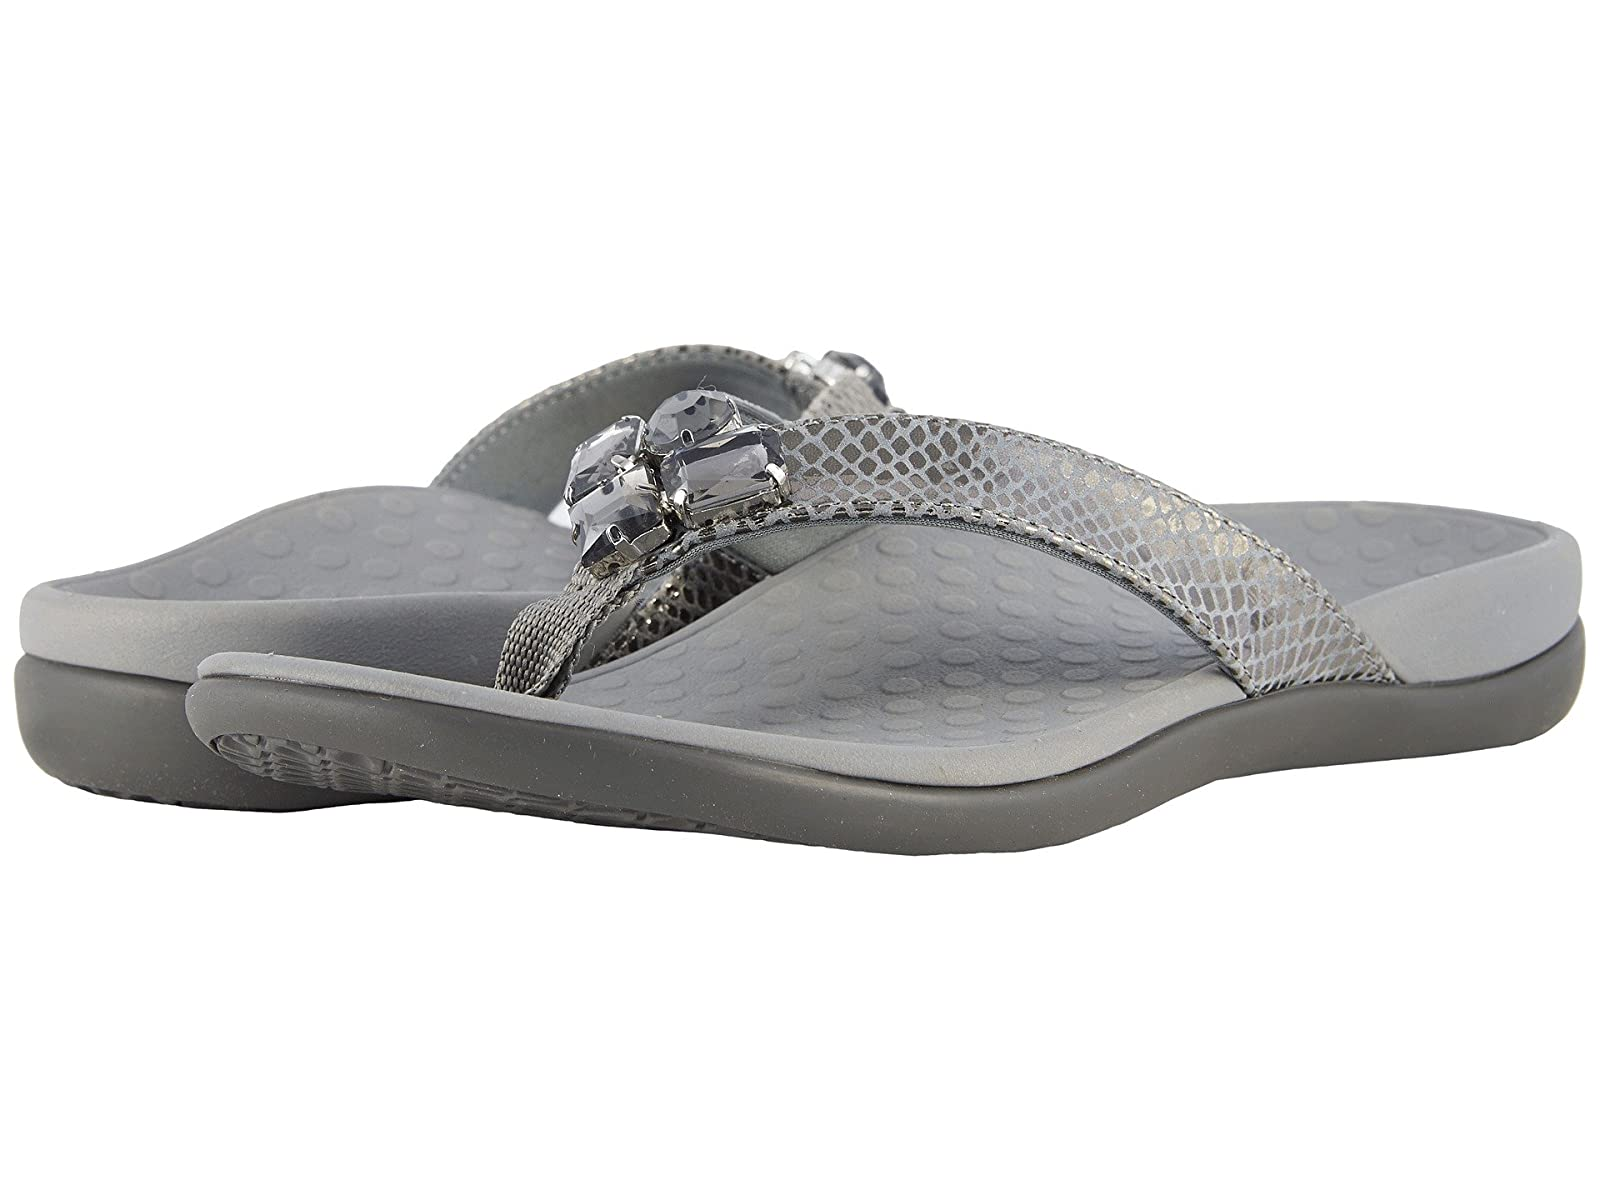 VIONIC Tide JewelCheap and distinctive eye-catching shoes